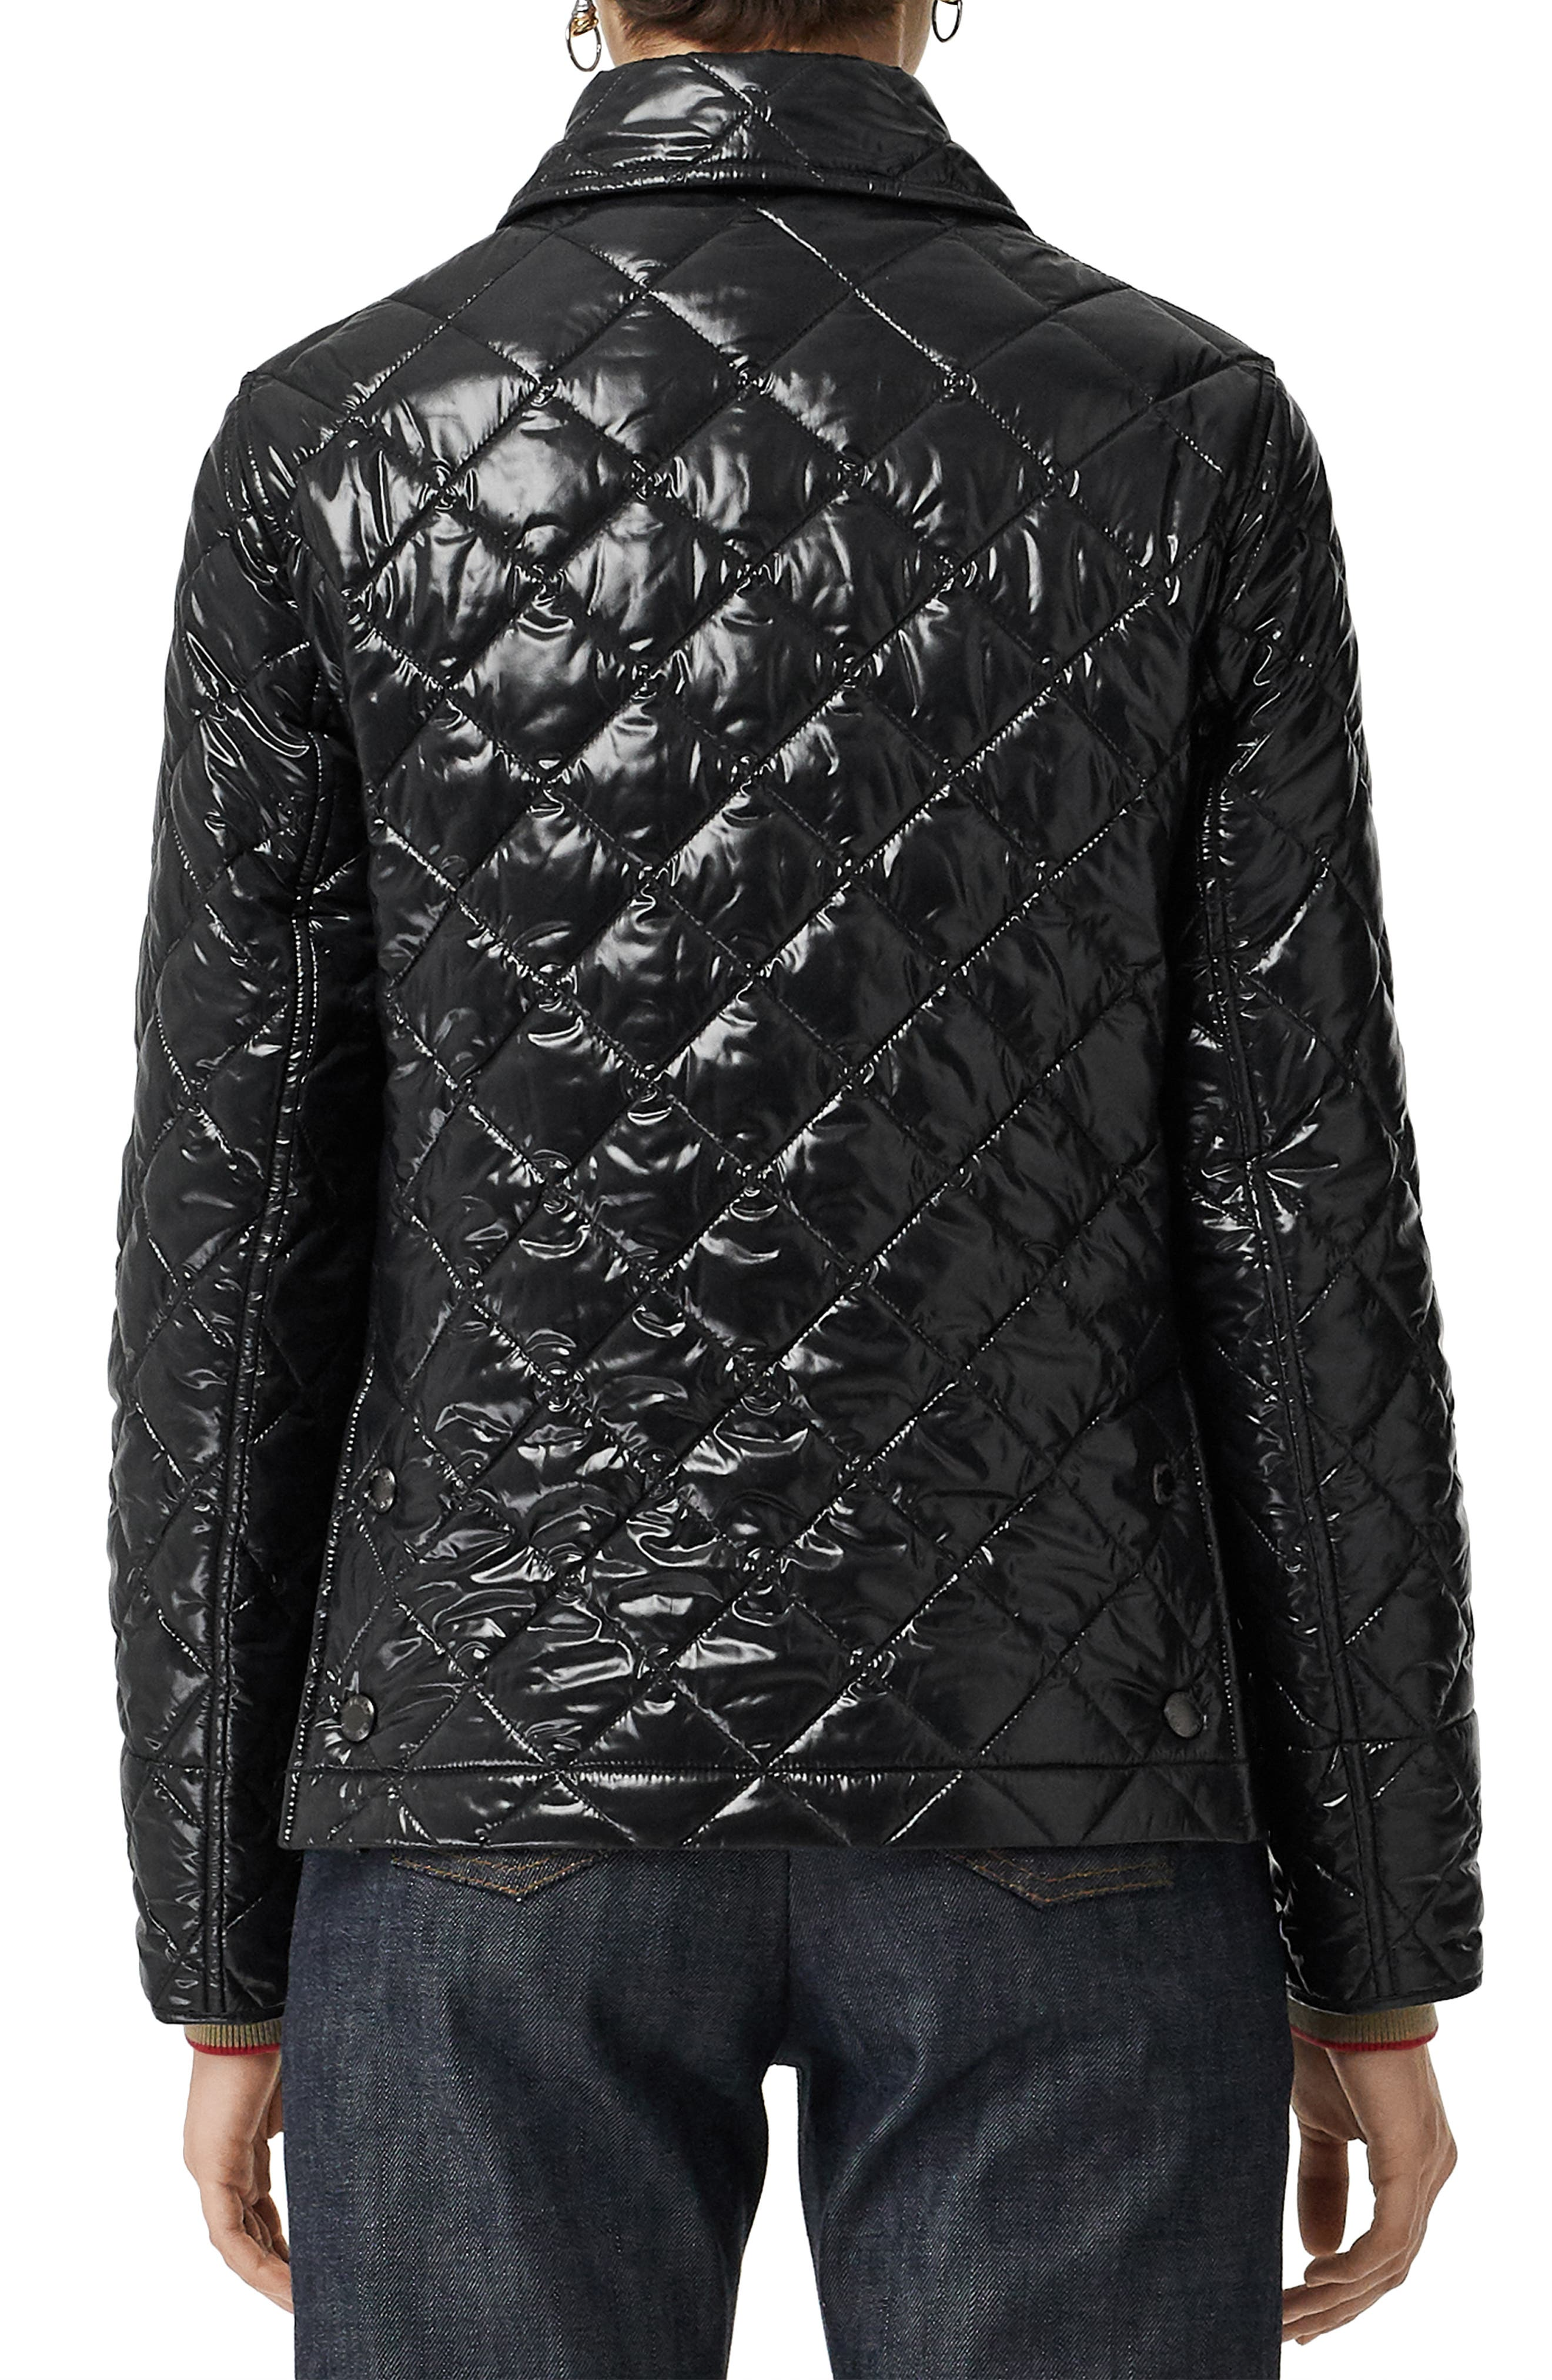 BURBERRY, Heathfield Frinton Knit Cuff Quilted Jacket, Alternate thumbnail 2, color, BLACK